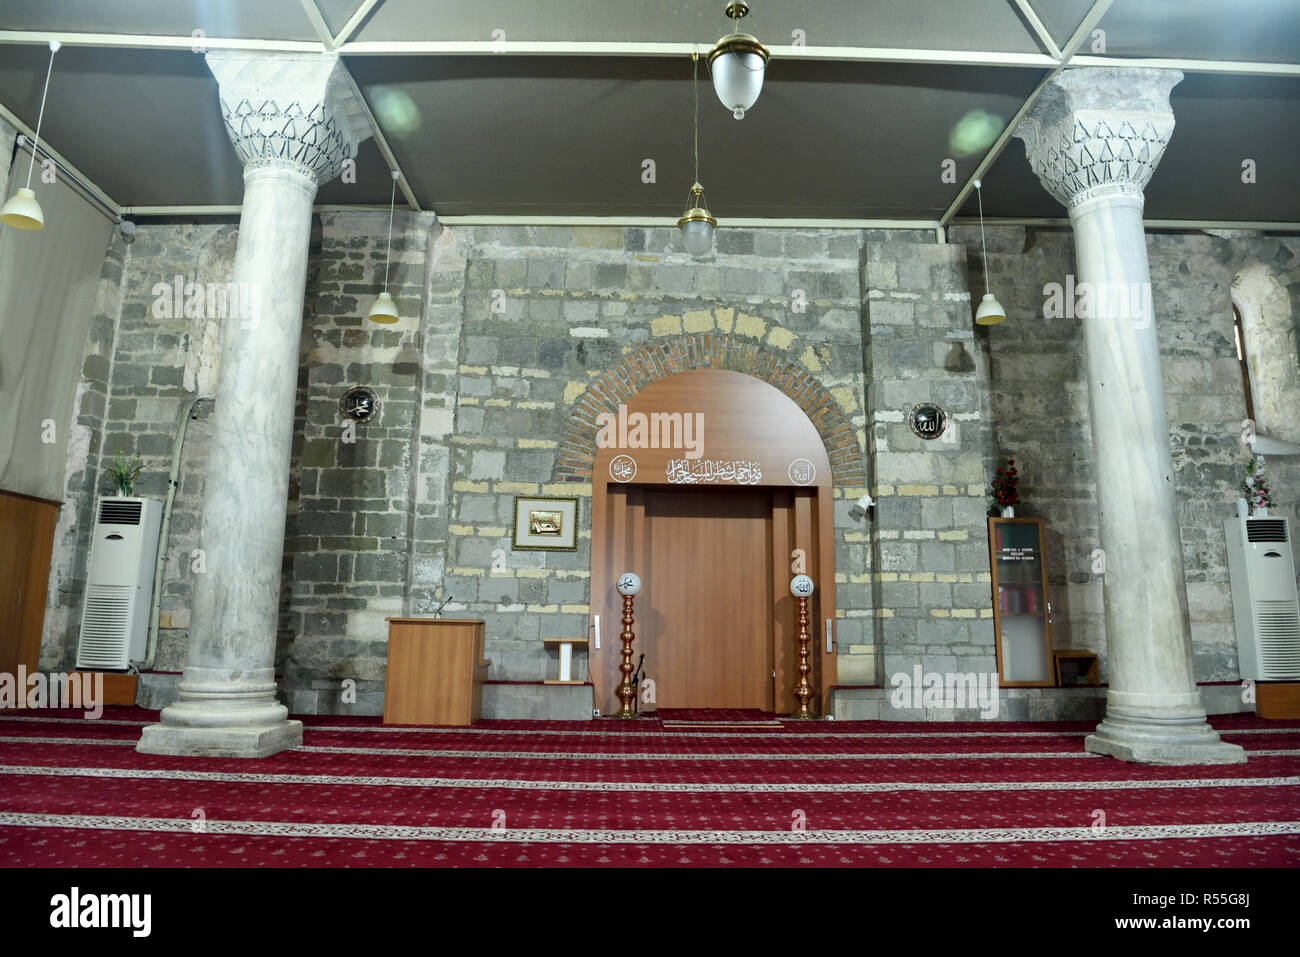 Interior View Of Aya Sofya Mosque In Trabzon, Turkey, With Two Columns,  Furniture And Arabic Inscriptions.